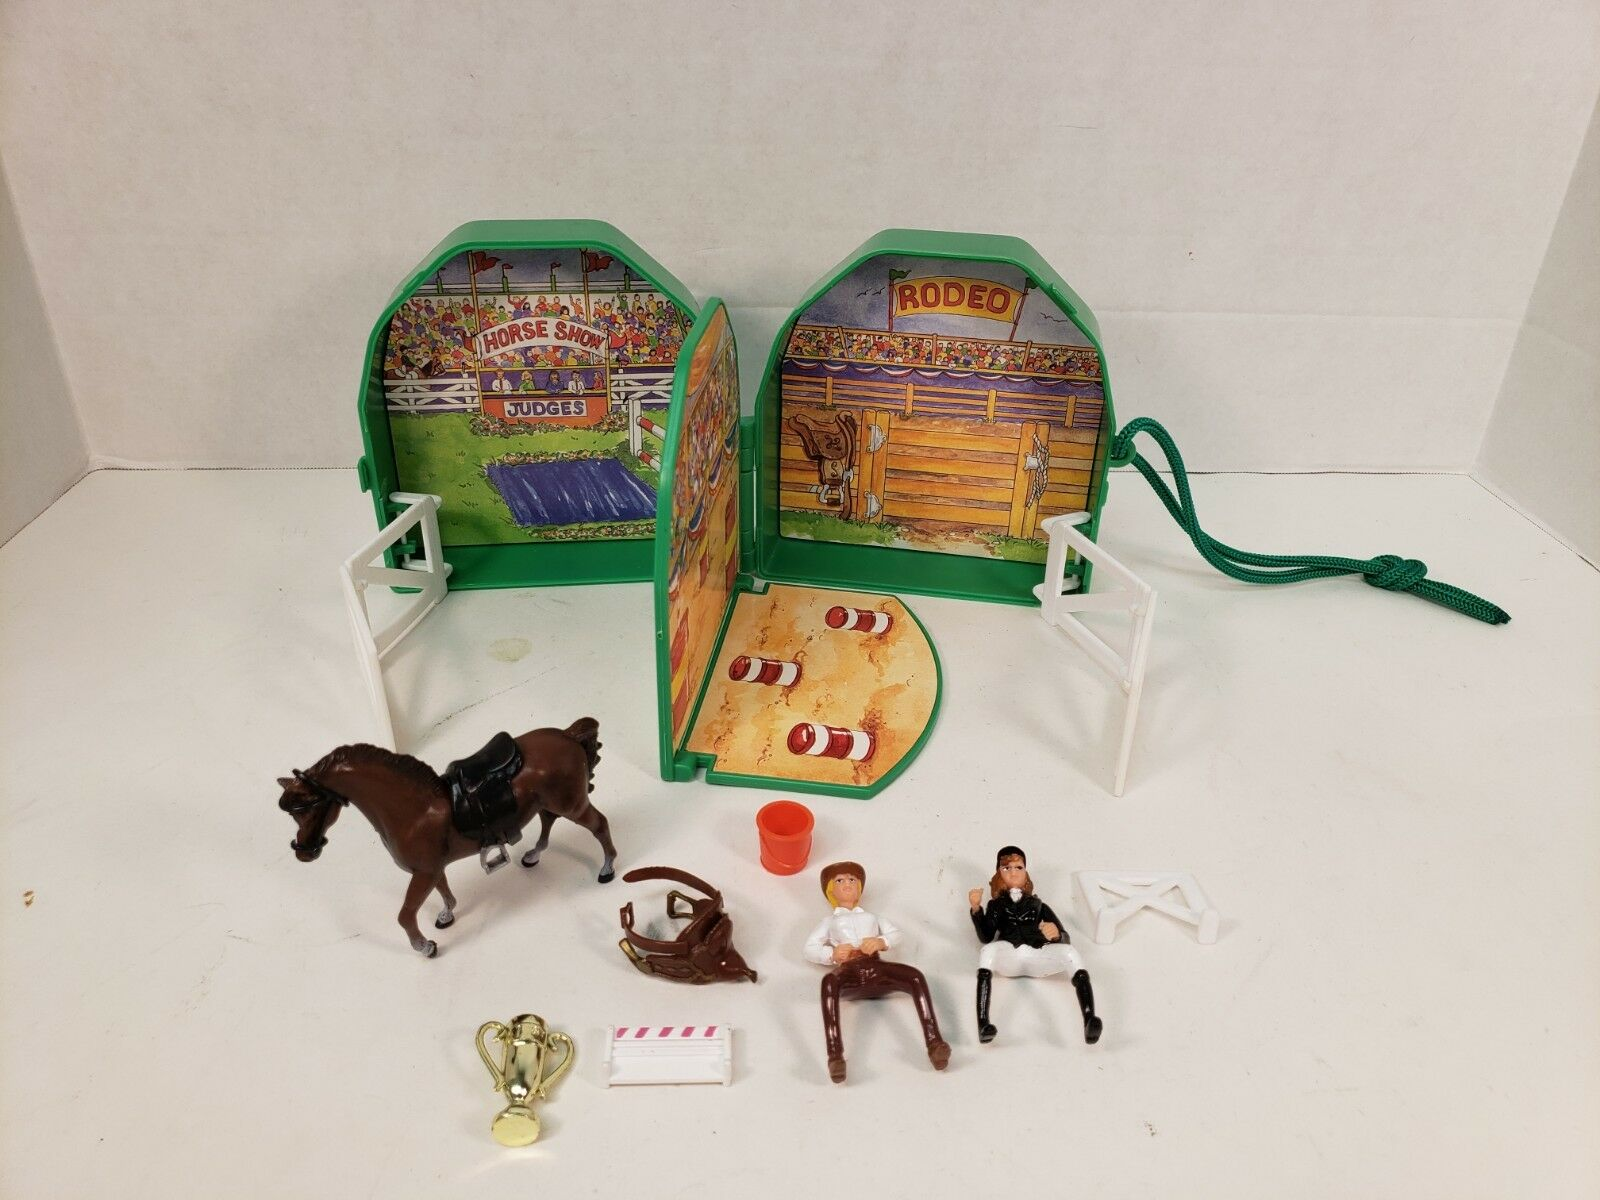 Grand Champions Horse Show Rodeo Playset Marchon 1993 Green Compact Toy Portable